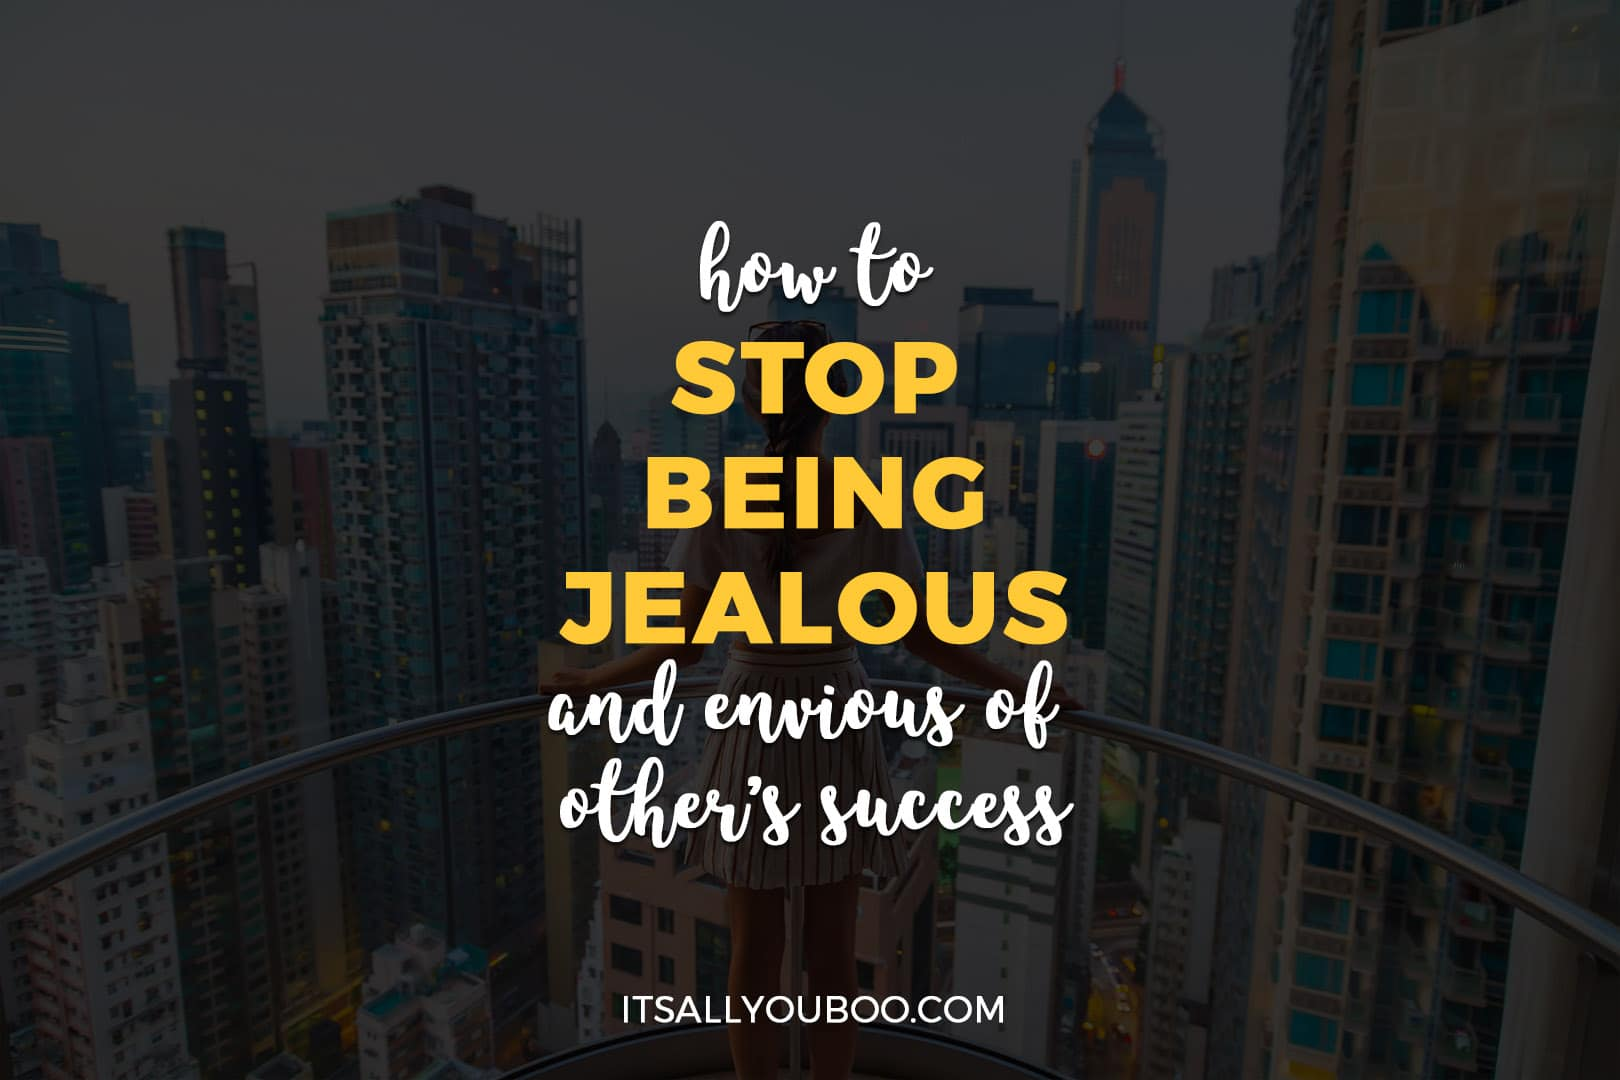 How to Stop Being Jealous and Envious of Others' Success